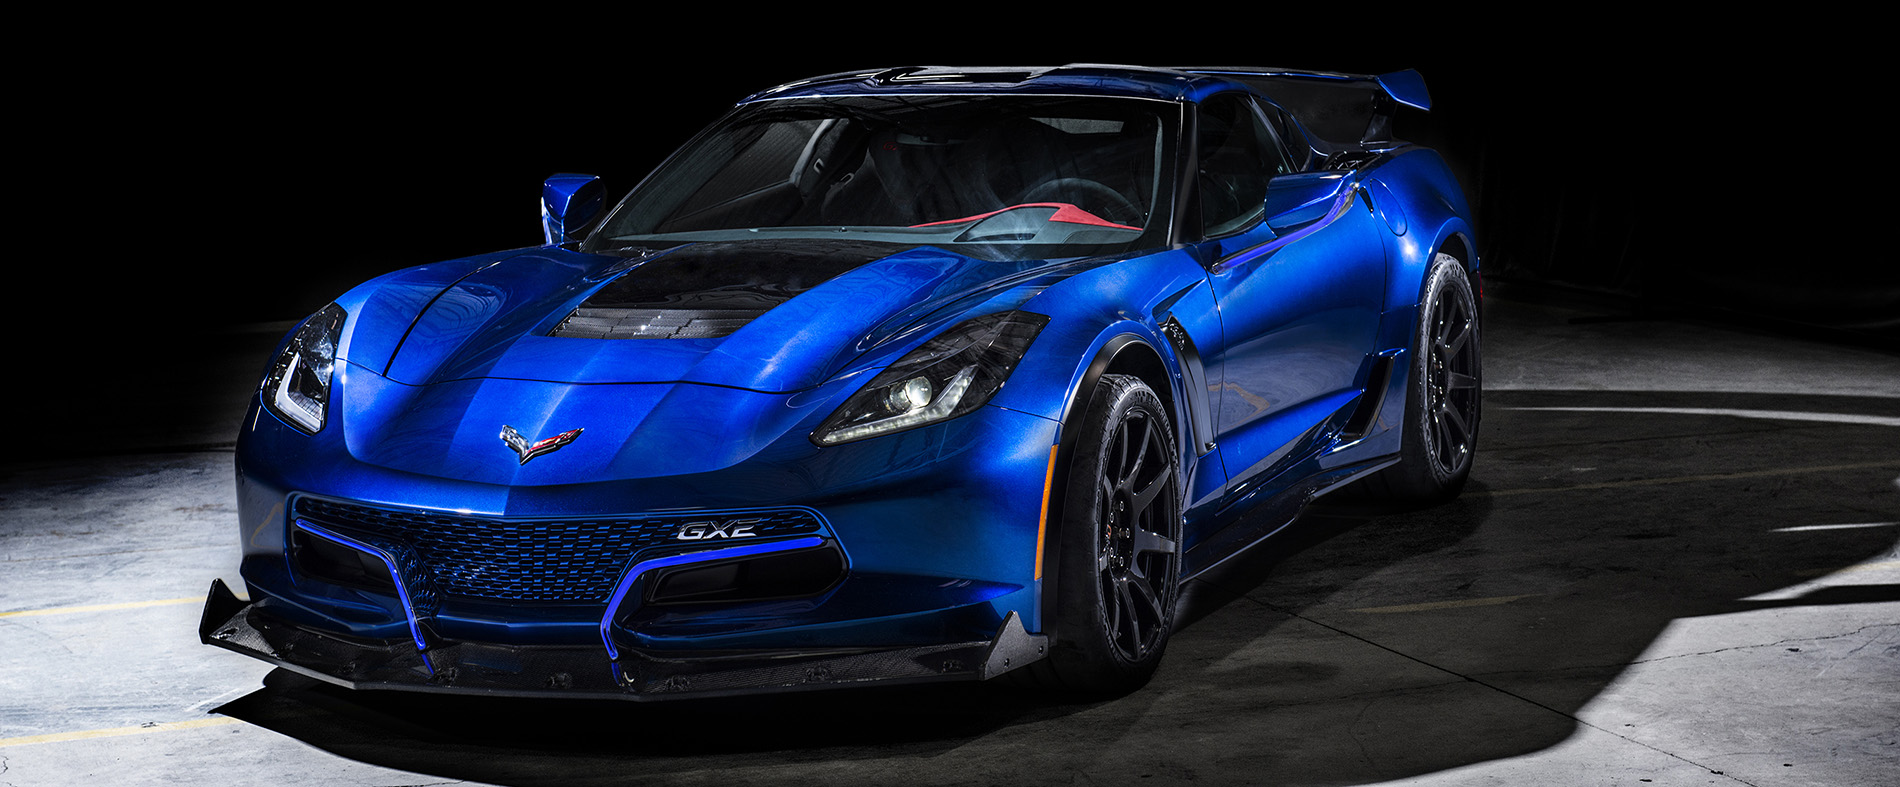 220 Mph Genovation Gxe All Electric Supercar Makes World